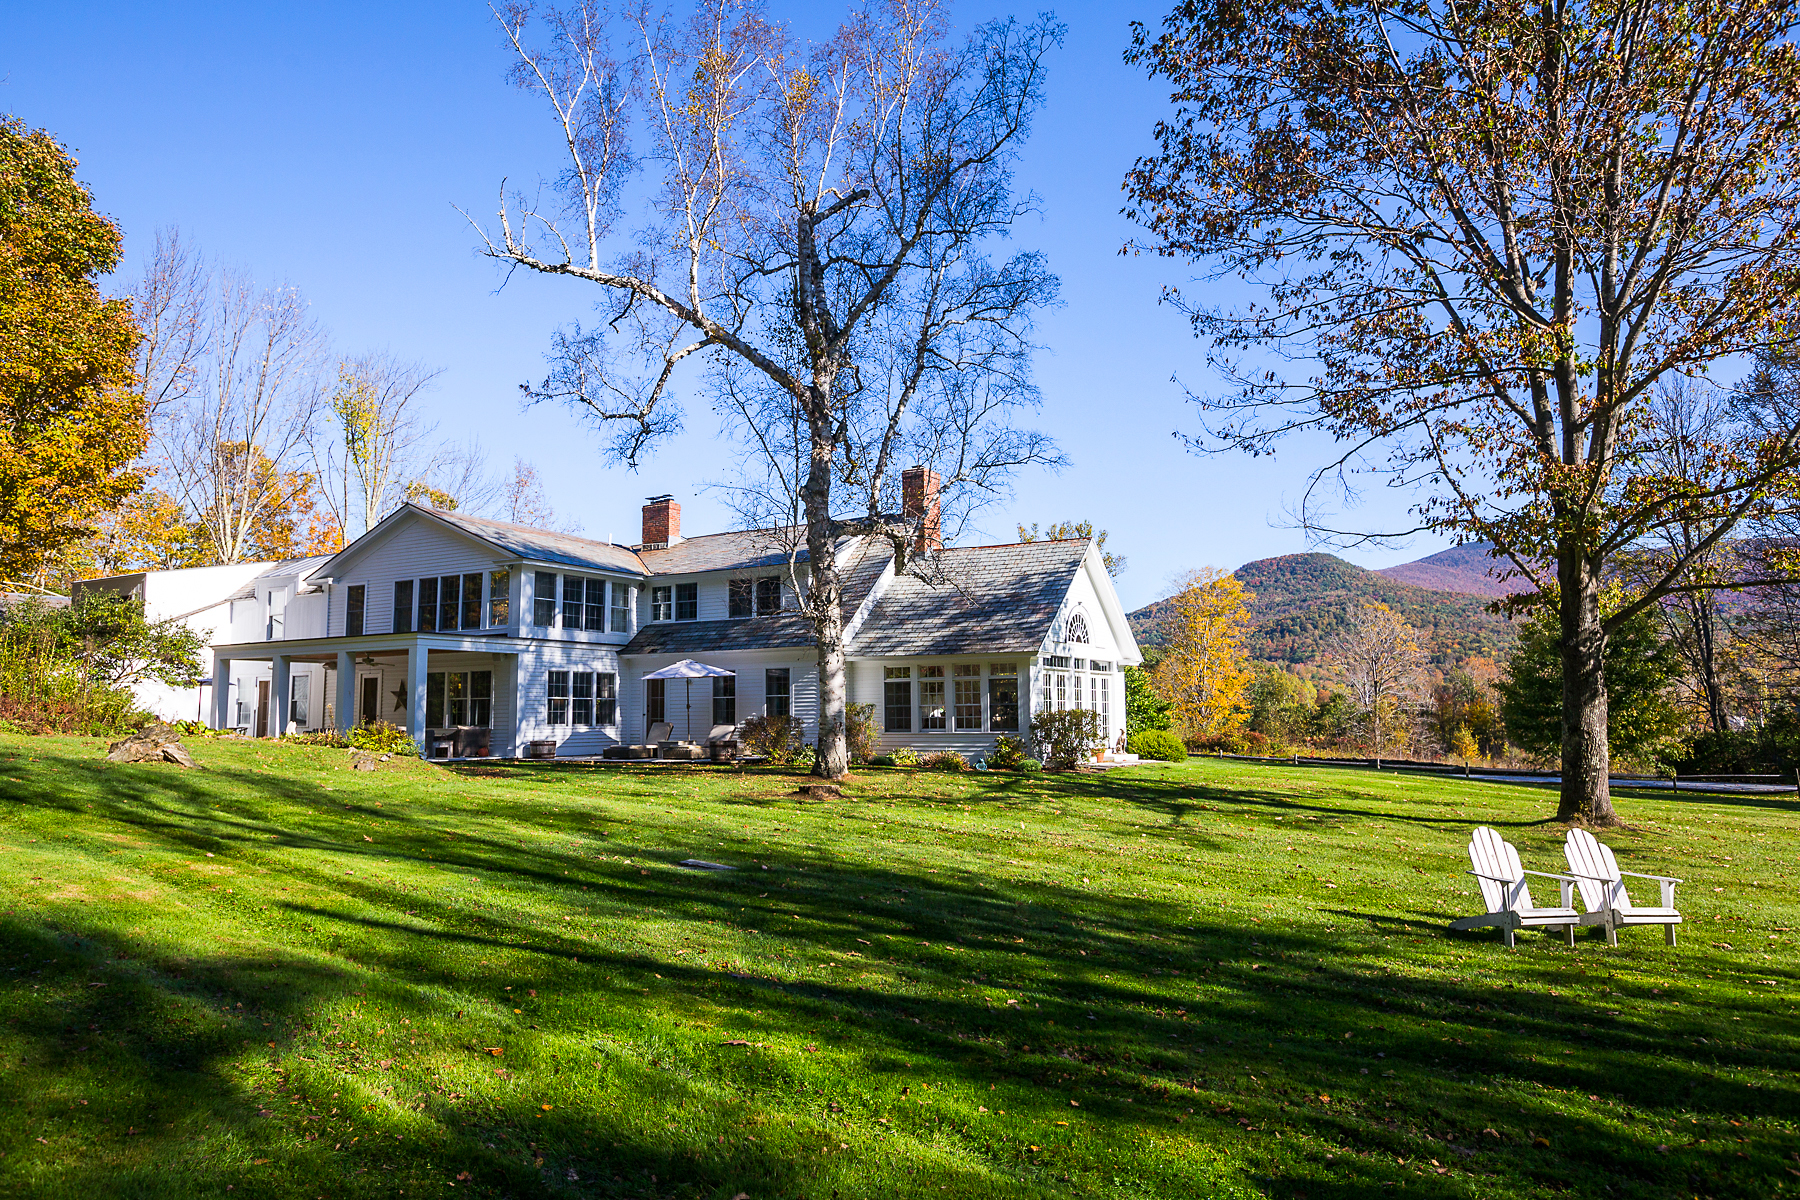 Single Family Home for Sale at Magnificent Farmhouse 279 Foote Rd Dorset, Vermont 05251 United States